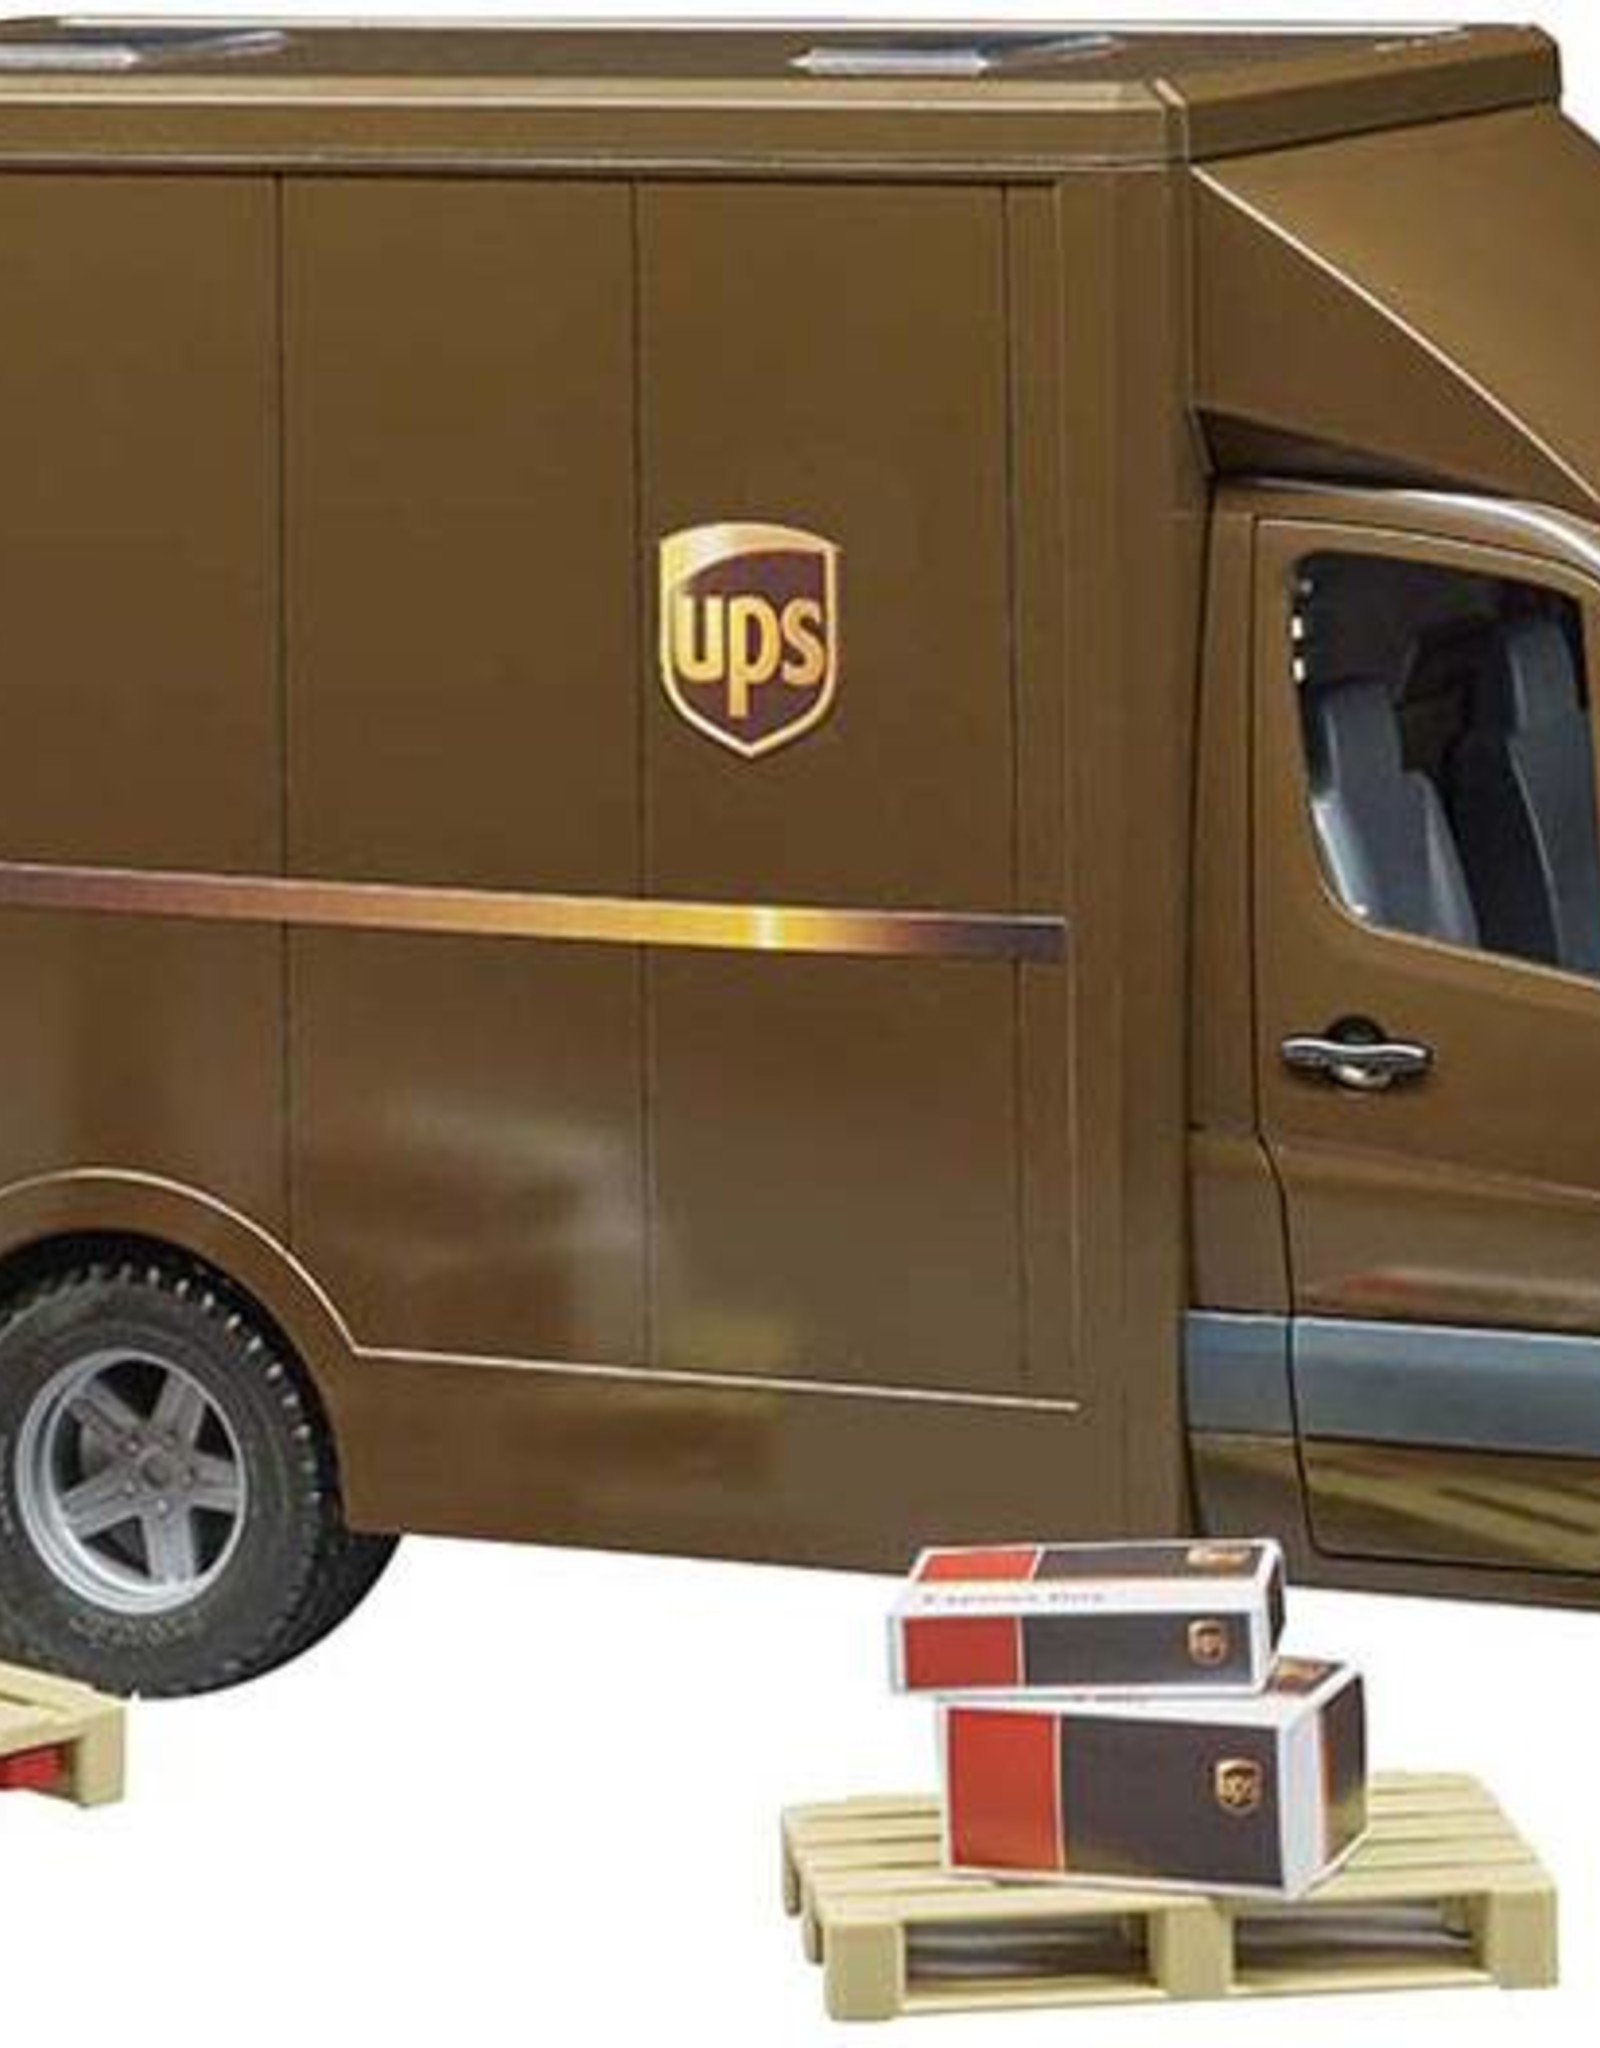 UPS Truck with Driver and Accessories